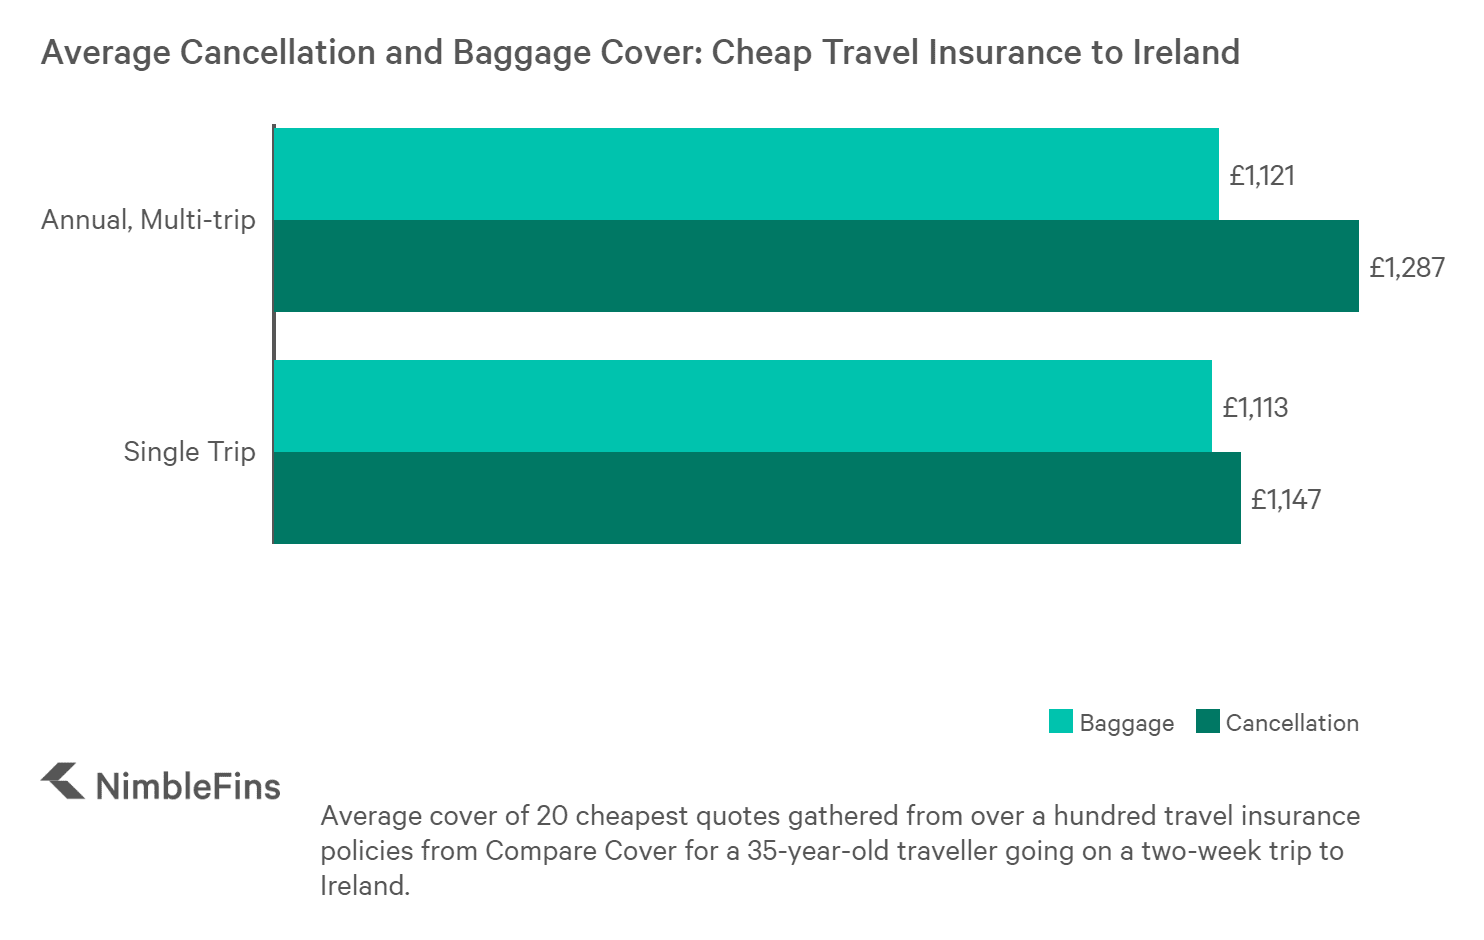 chart showing the Cancellation and Baggage cover for cheap and average price travel insurance policies